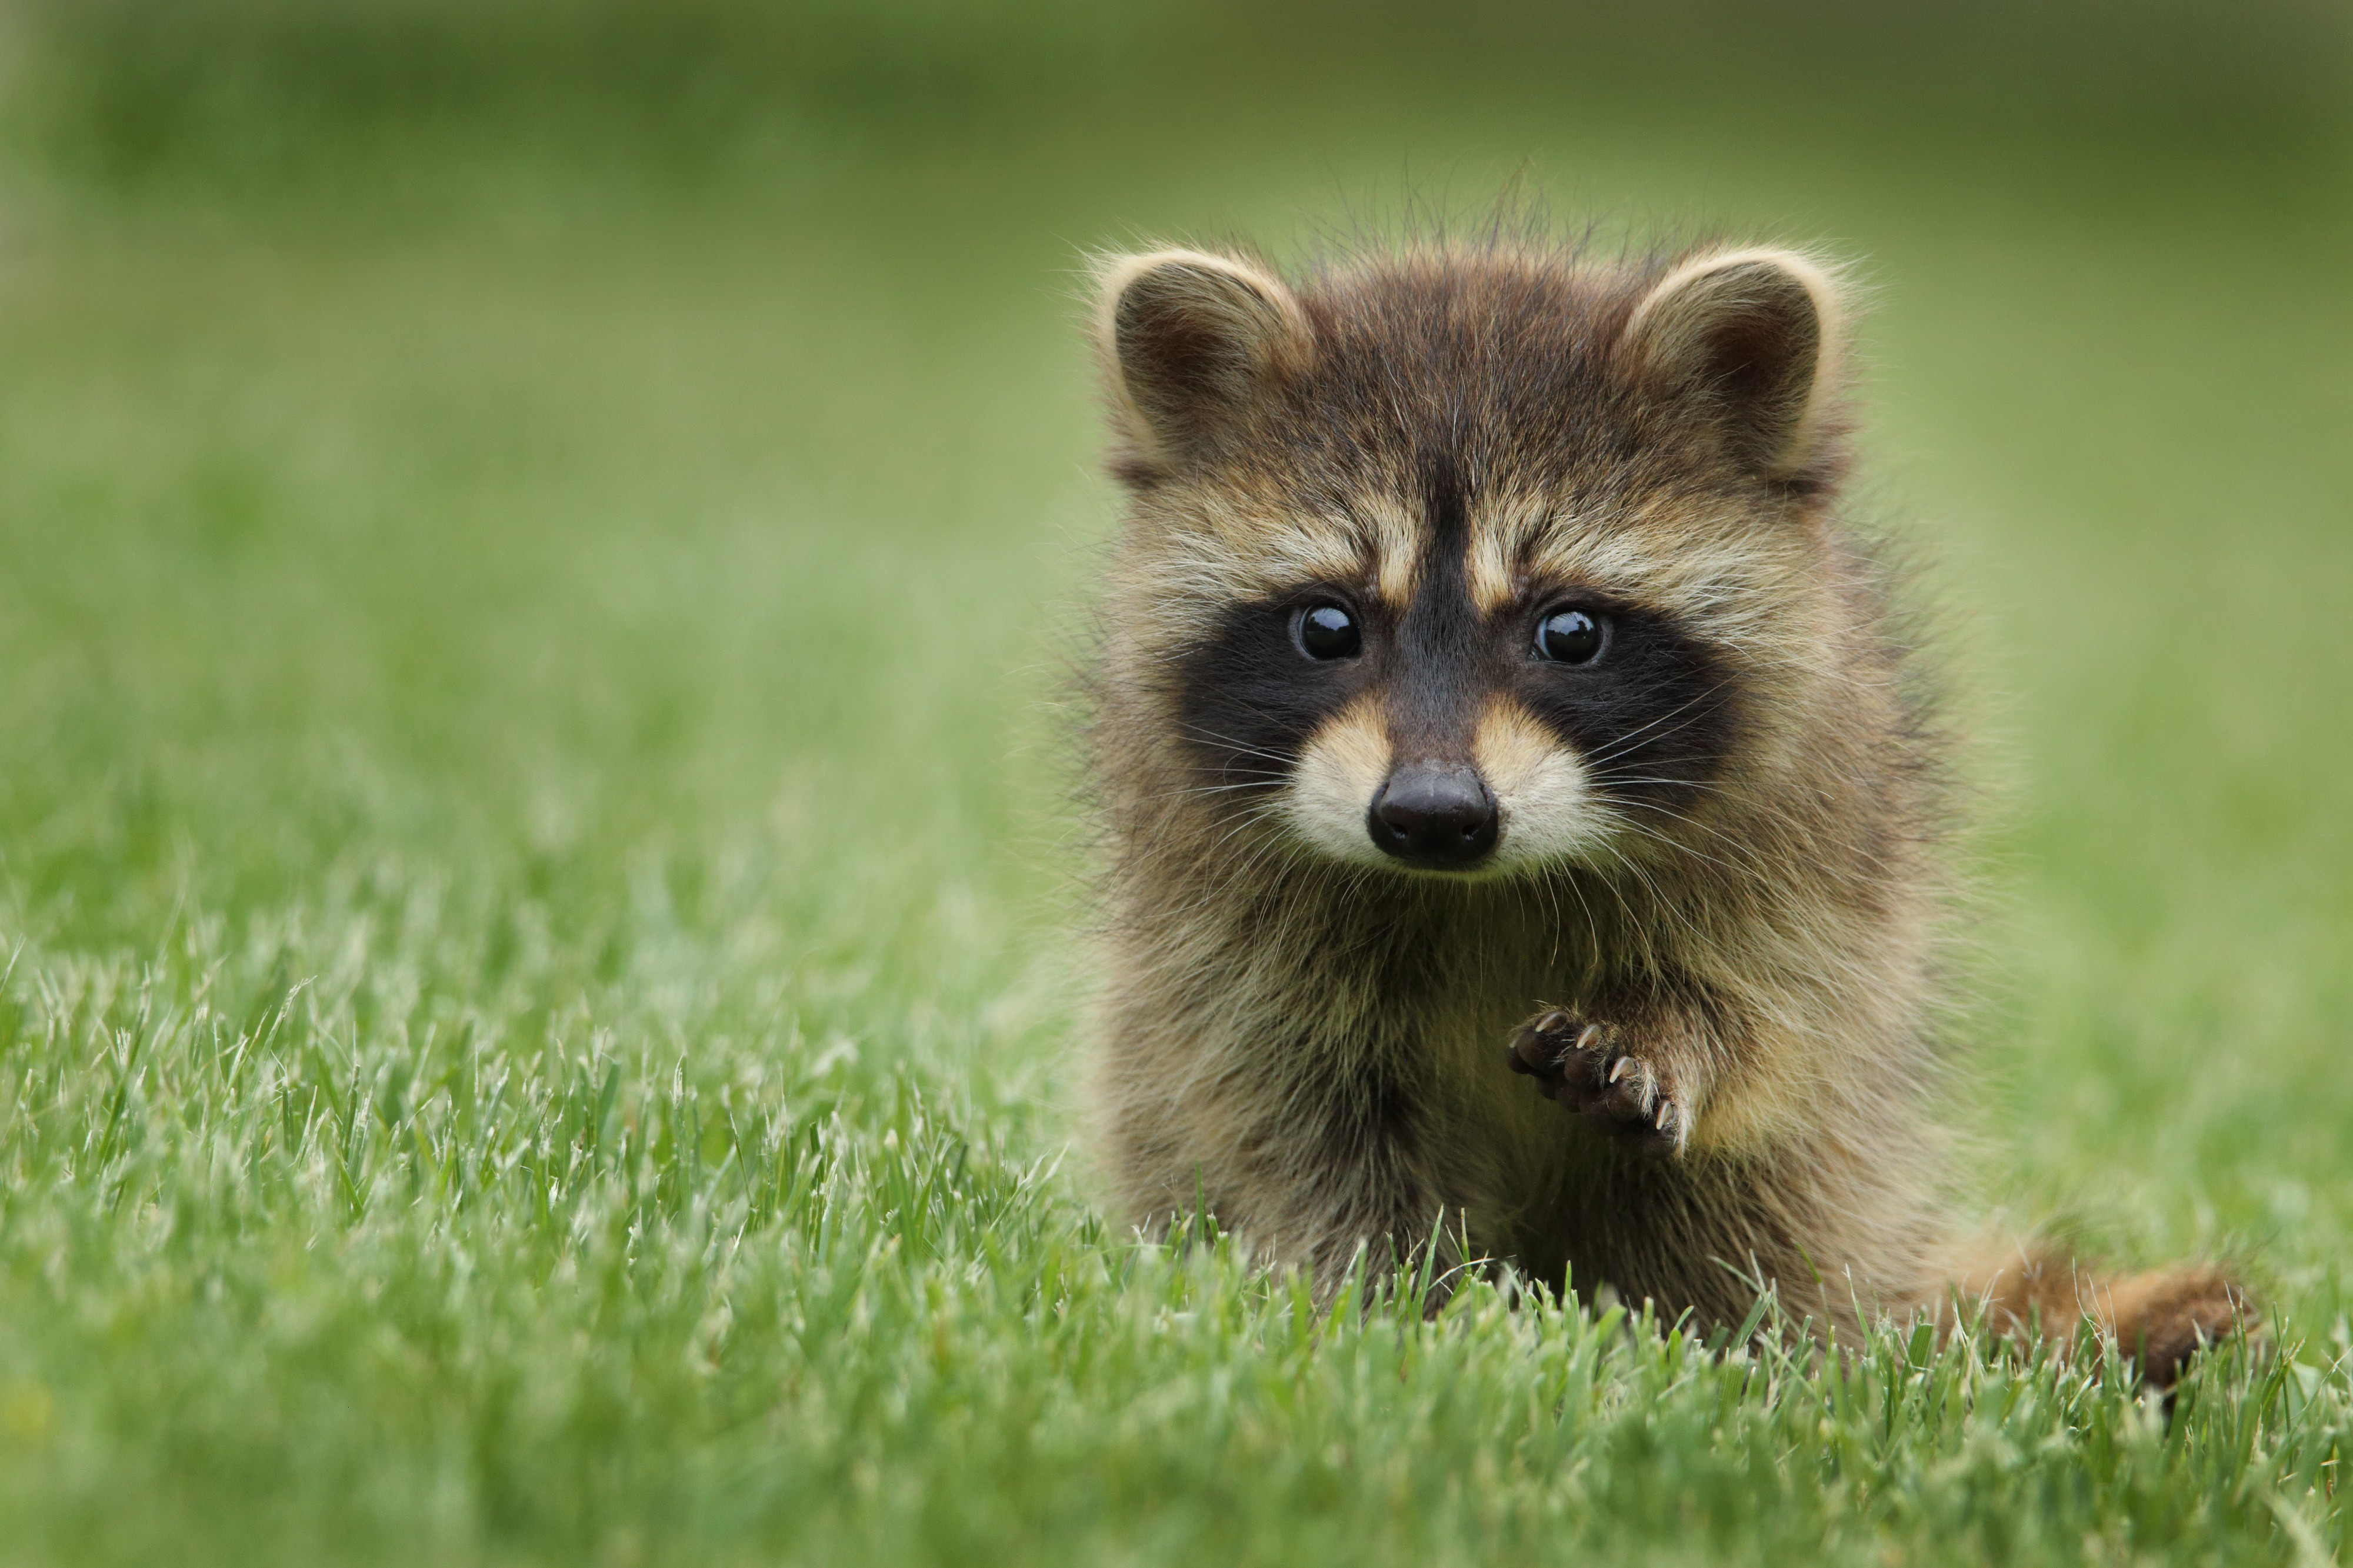 A very cute baby raccoon with one paw outstretched, looking slightly concerned towards the camera